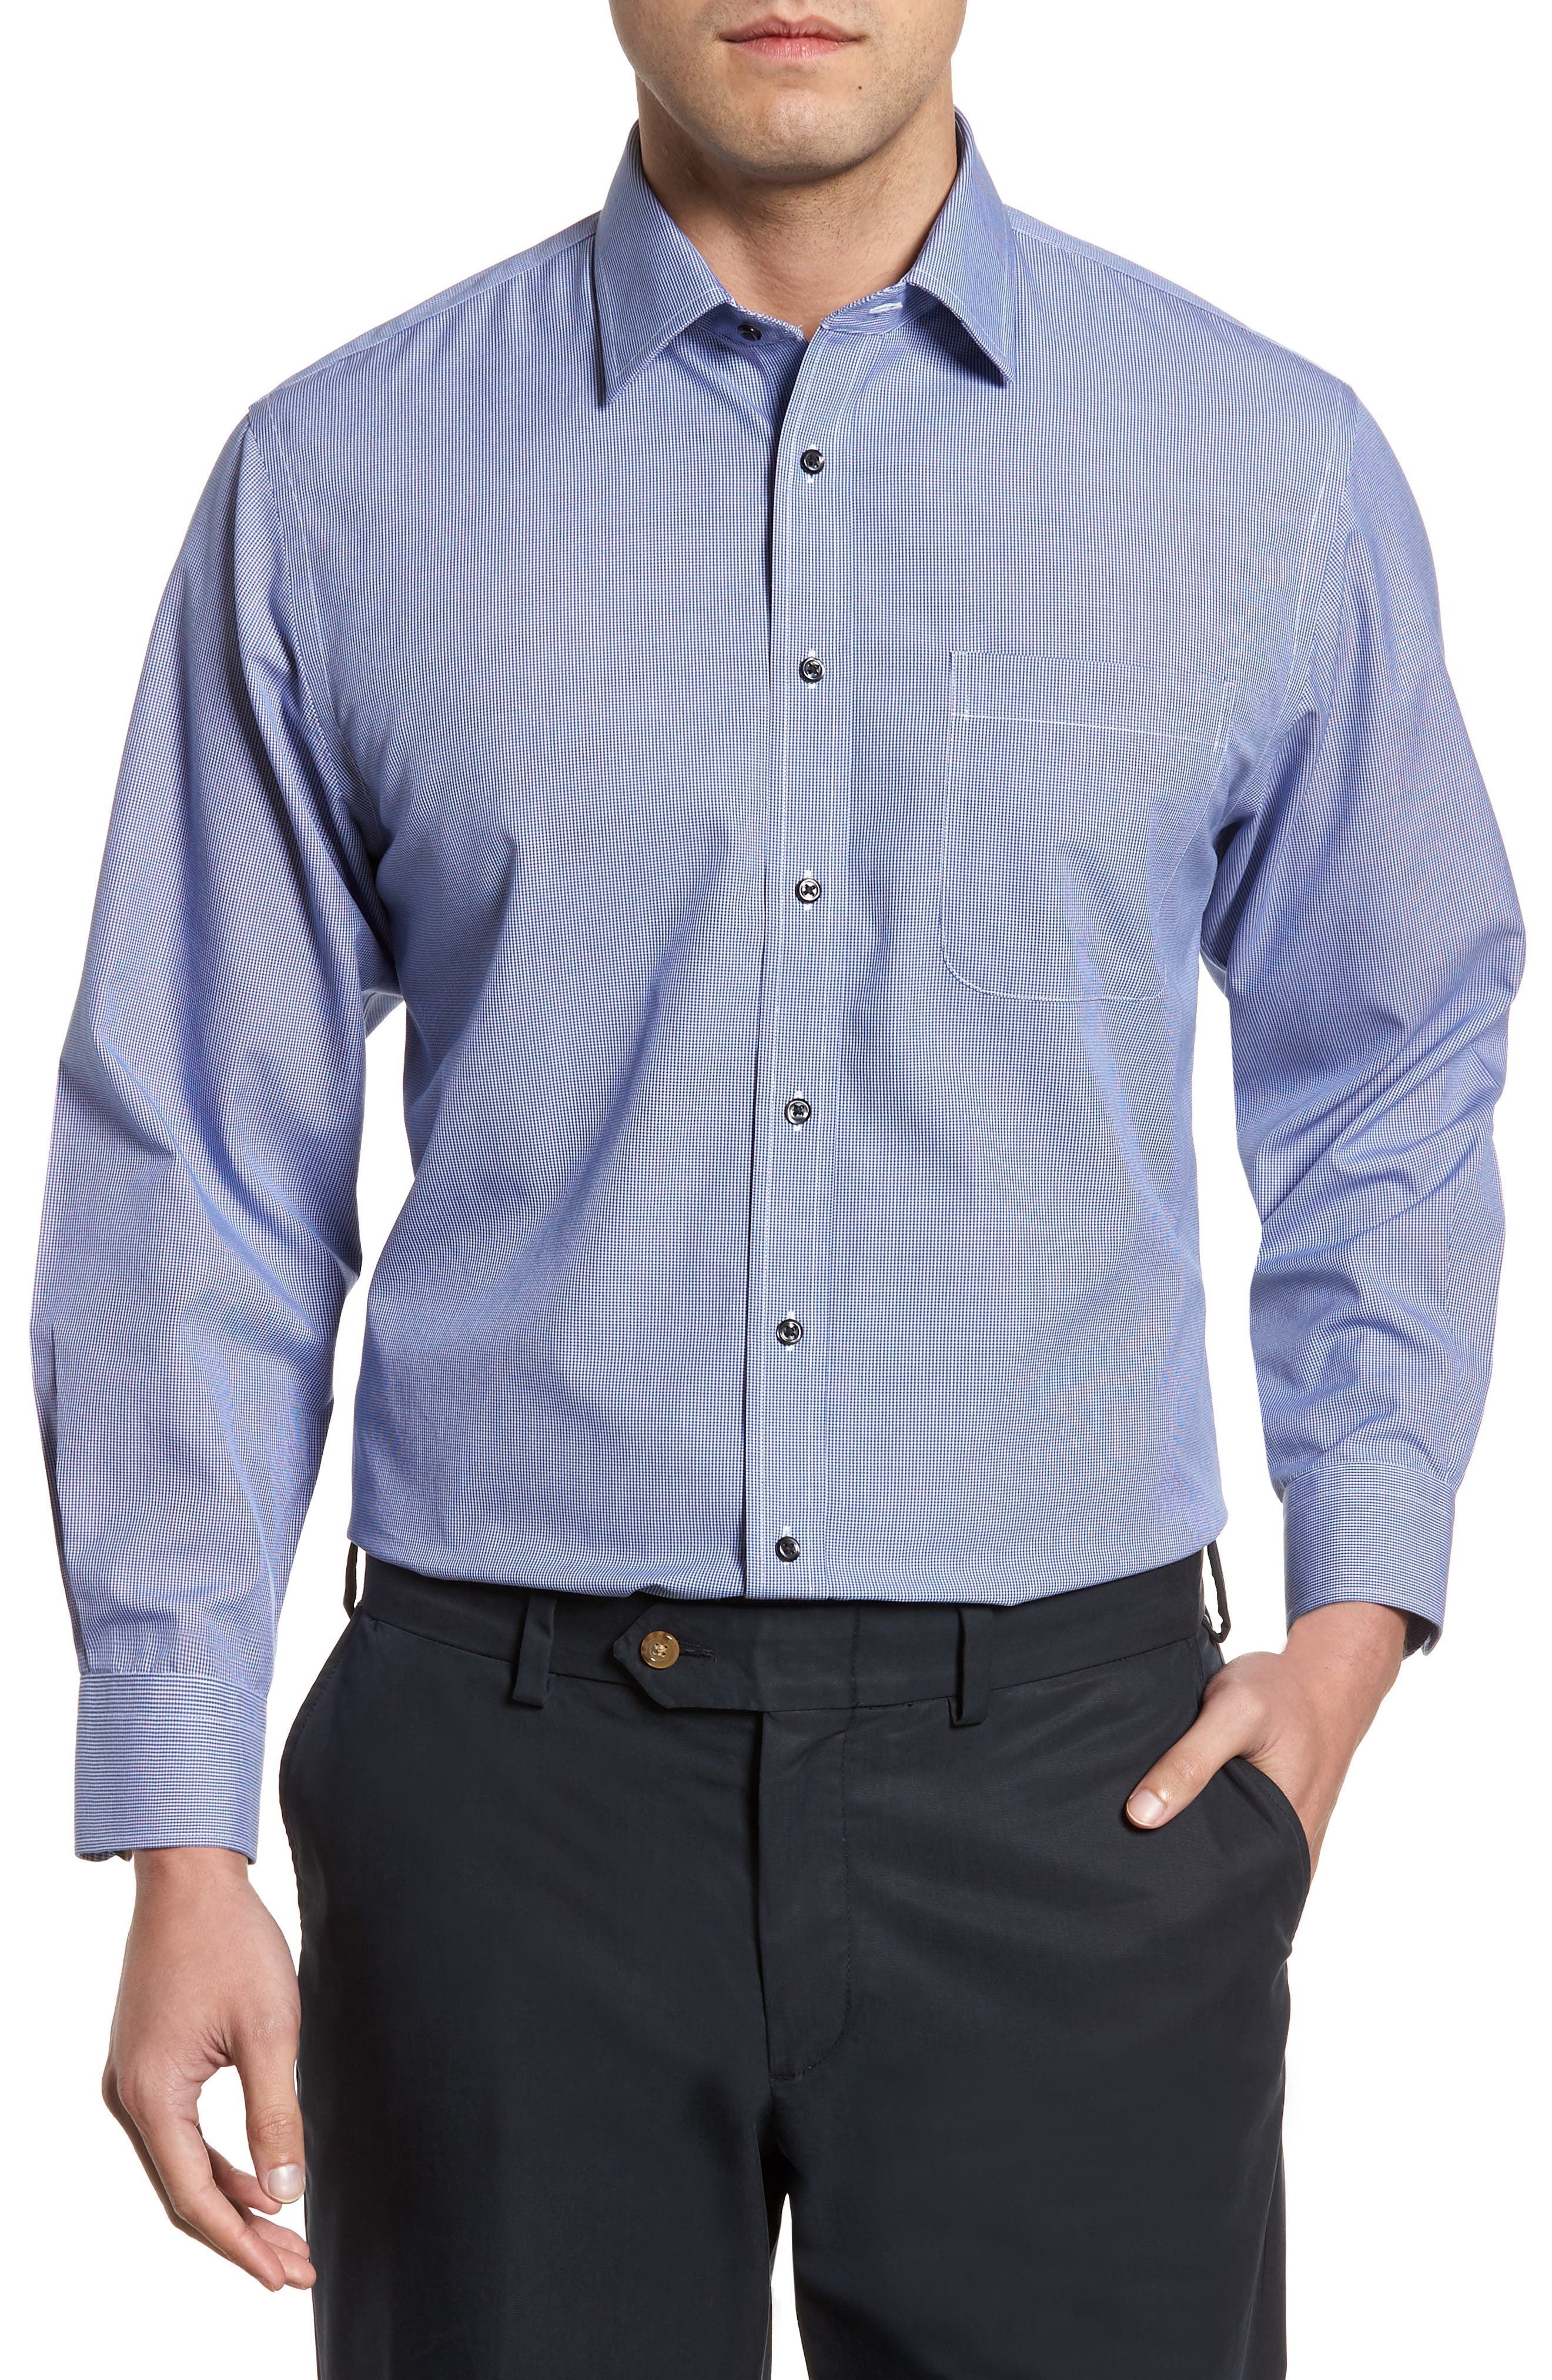 Alternate Image 1 Selected - Nordstrom Men's Shop Smartcare™ Traditional Fit Micro Check Dress Shirt